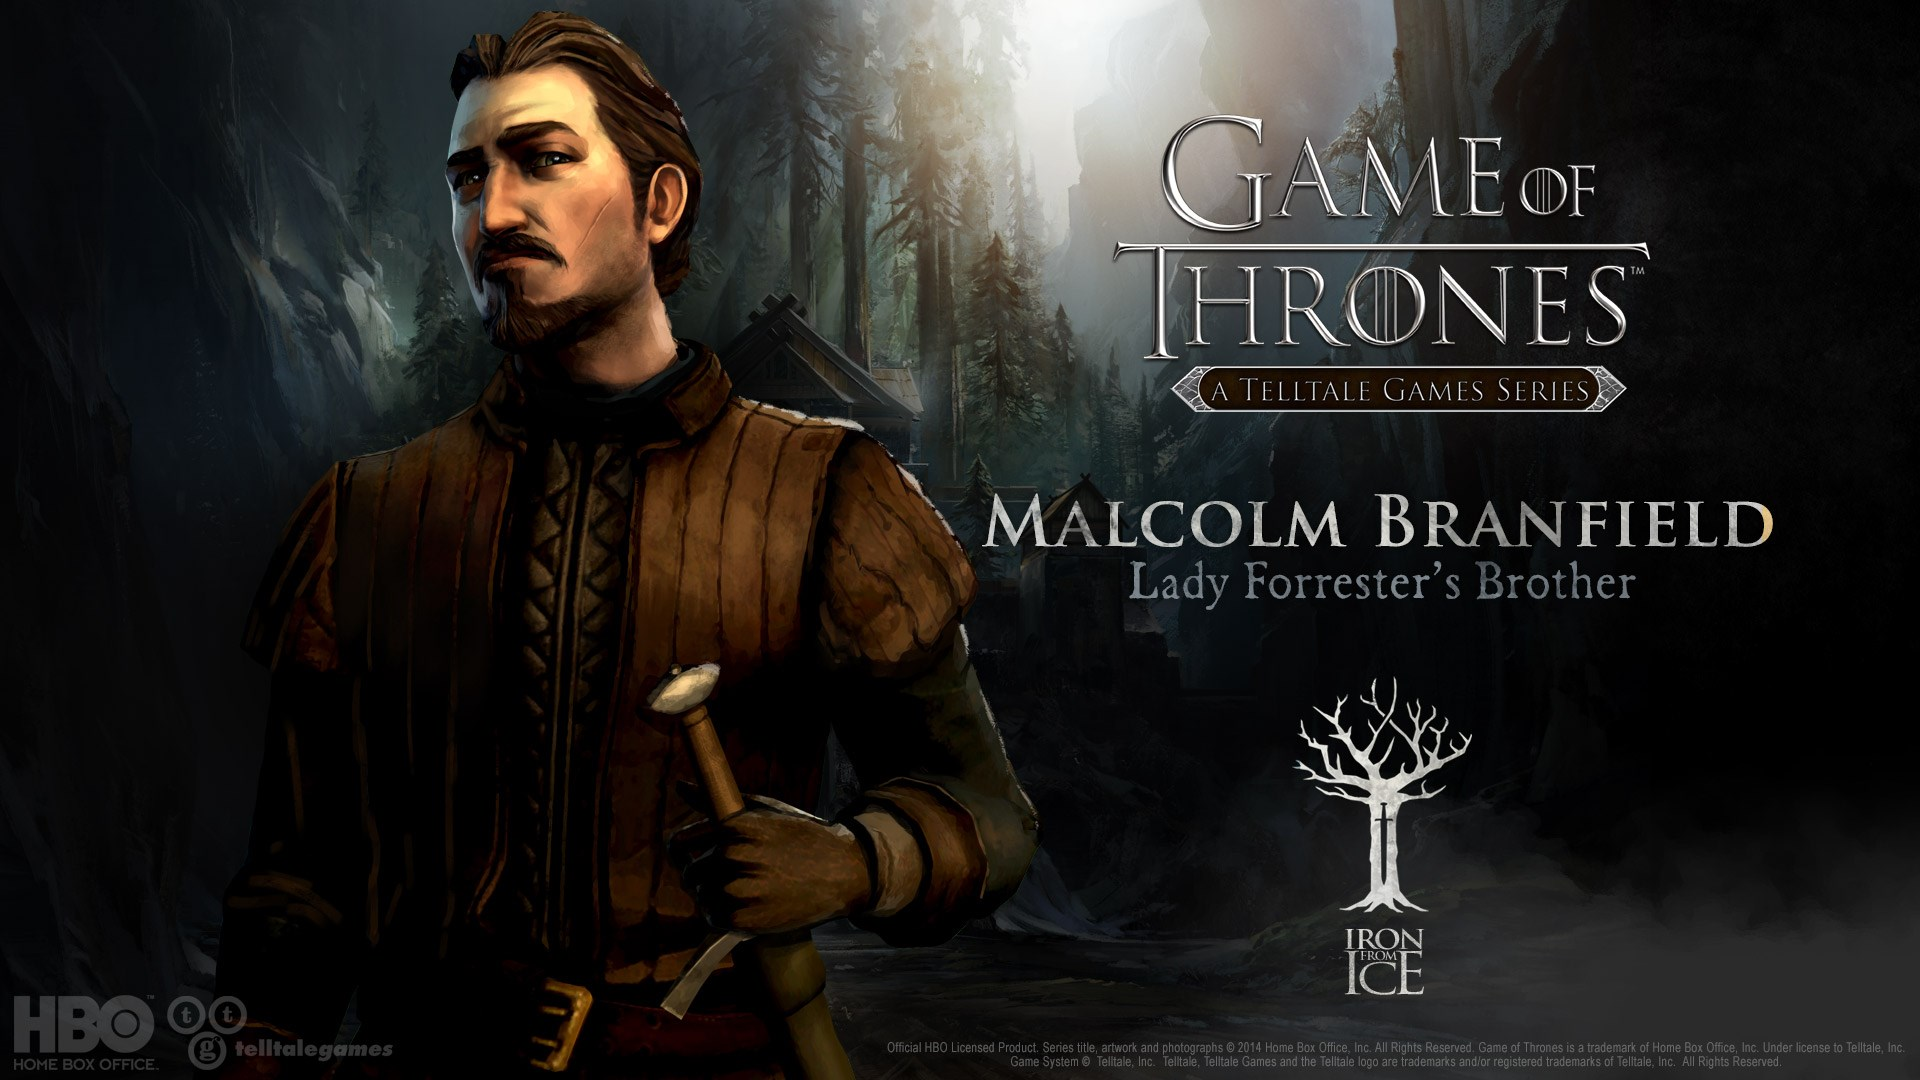 Free-download-game-of-thrones-a-telltale-games-series-wallpaper-wp3807